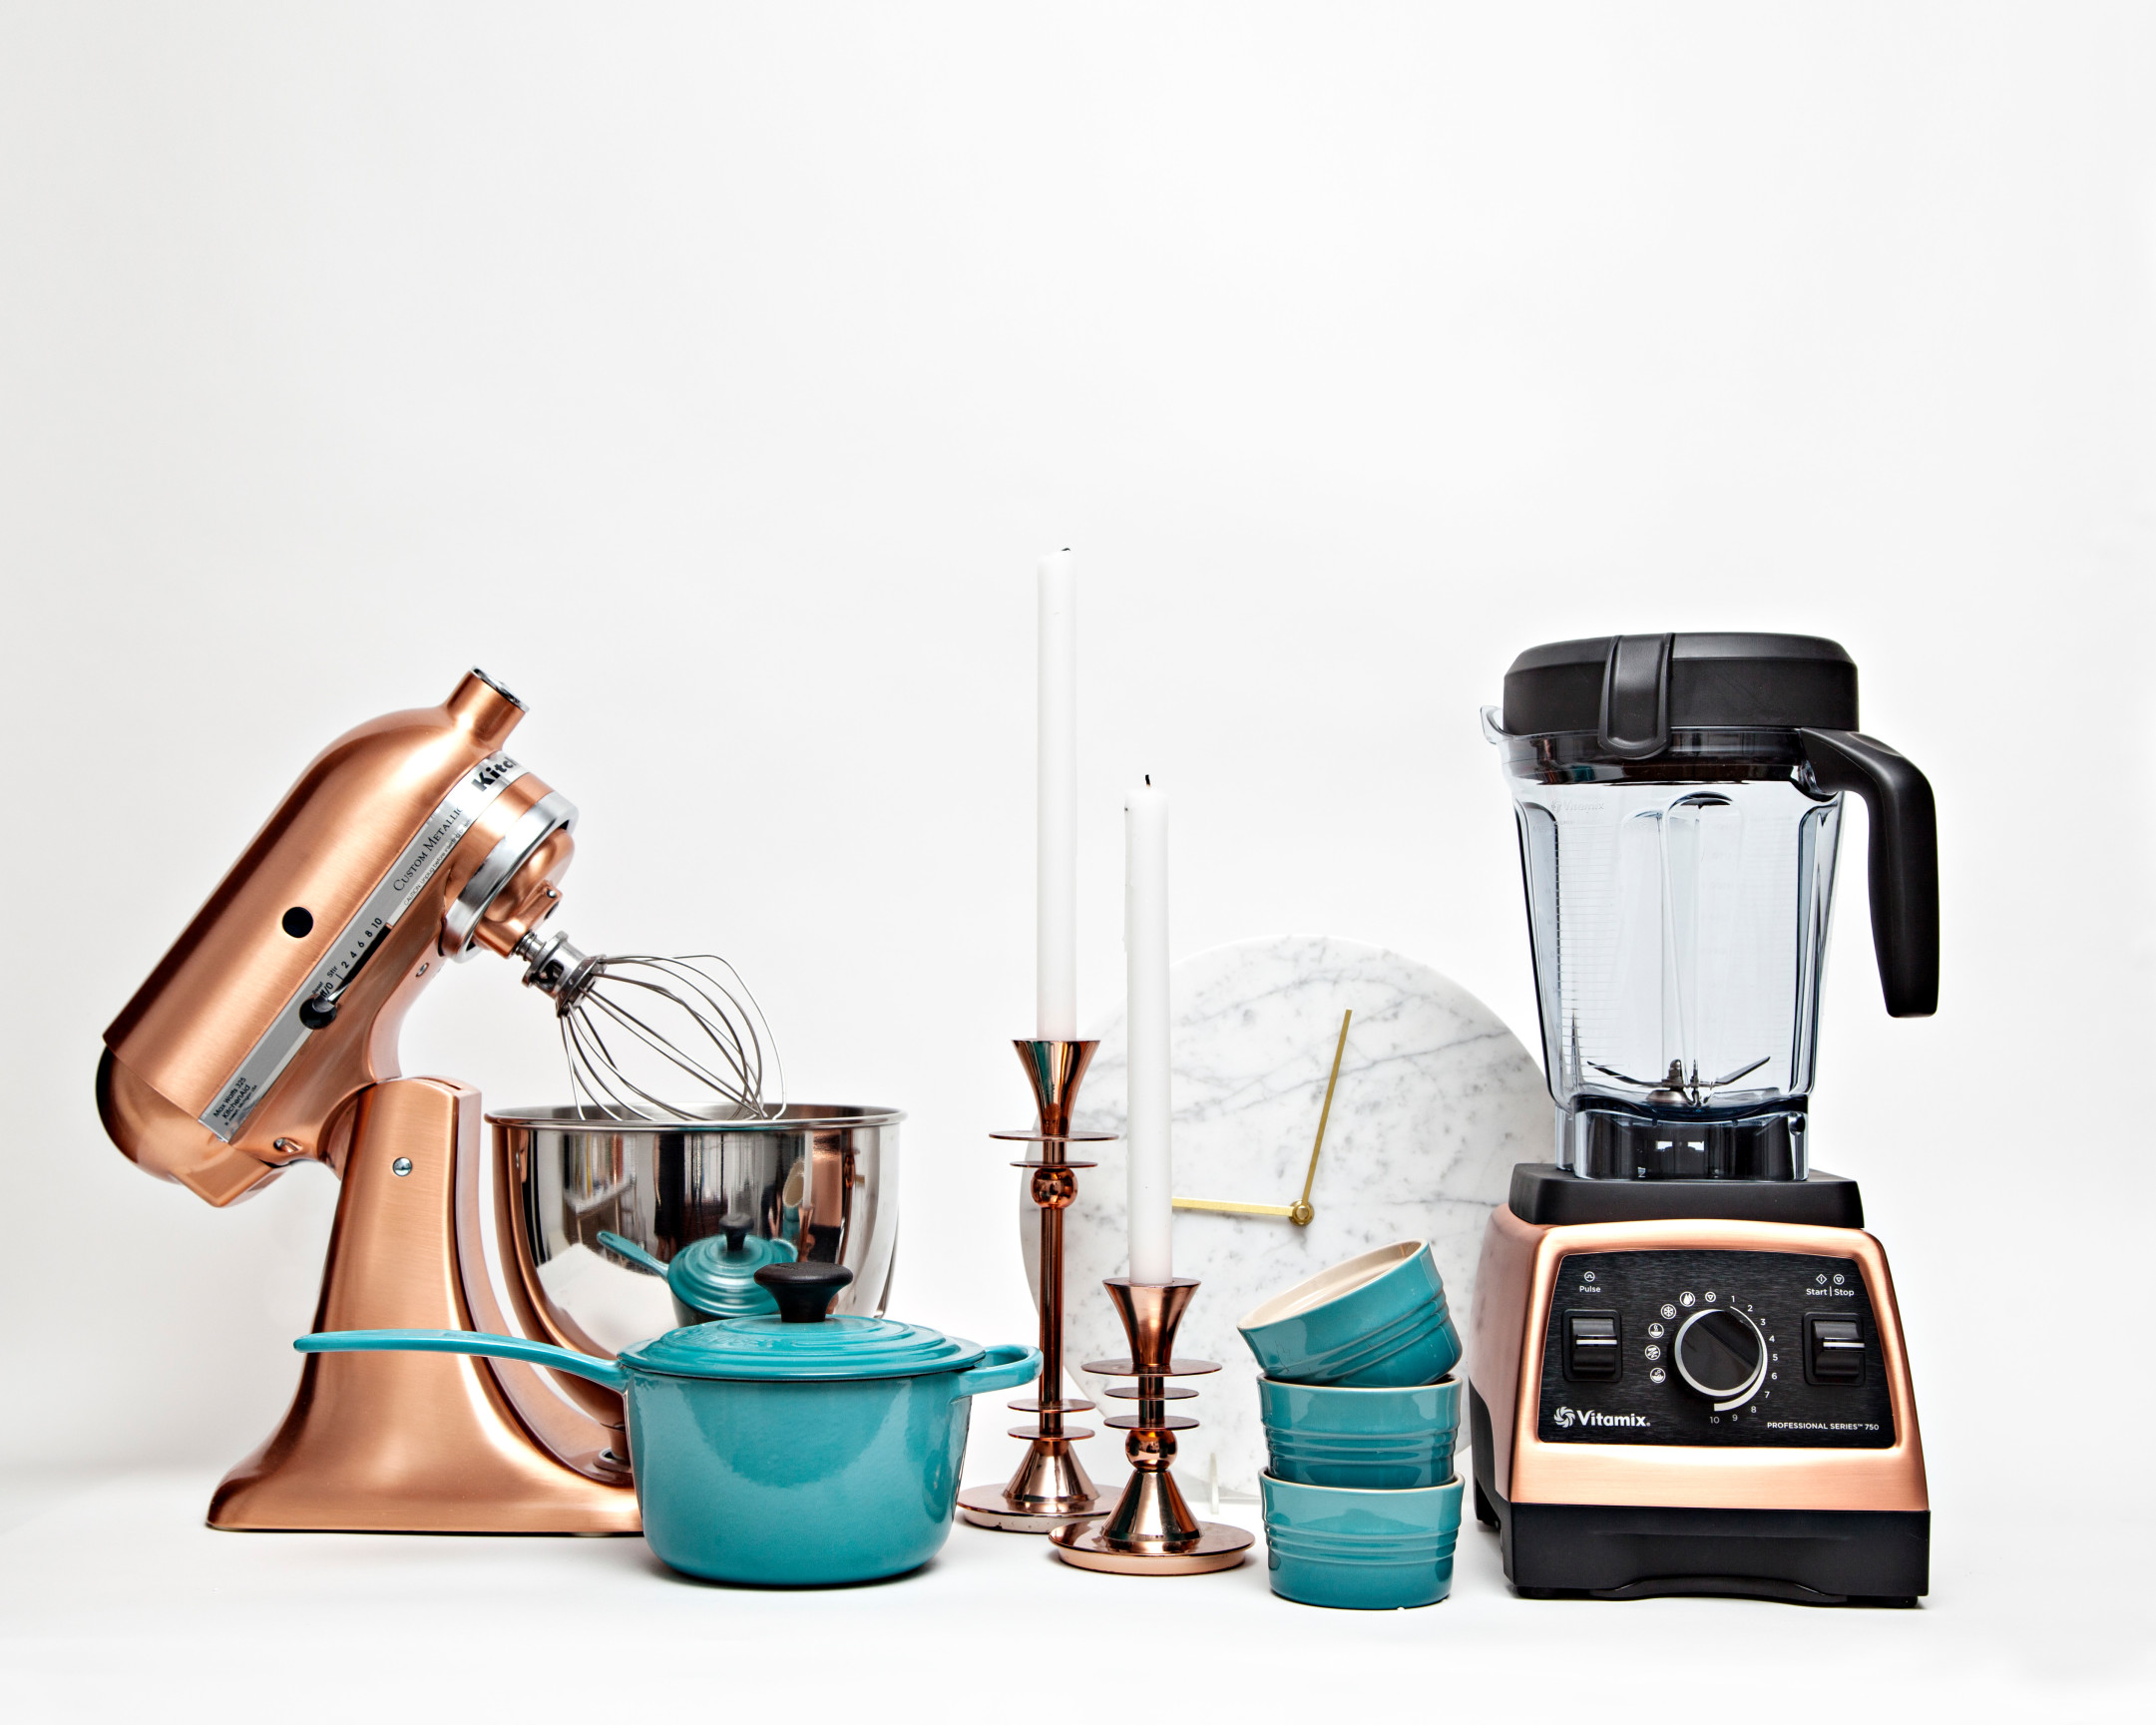 wedding gifts from a Zola registry including copper Kitchen Aid stand mixer, Le Creuset turquoise ramekins, and a copper Vitamix blender